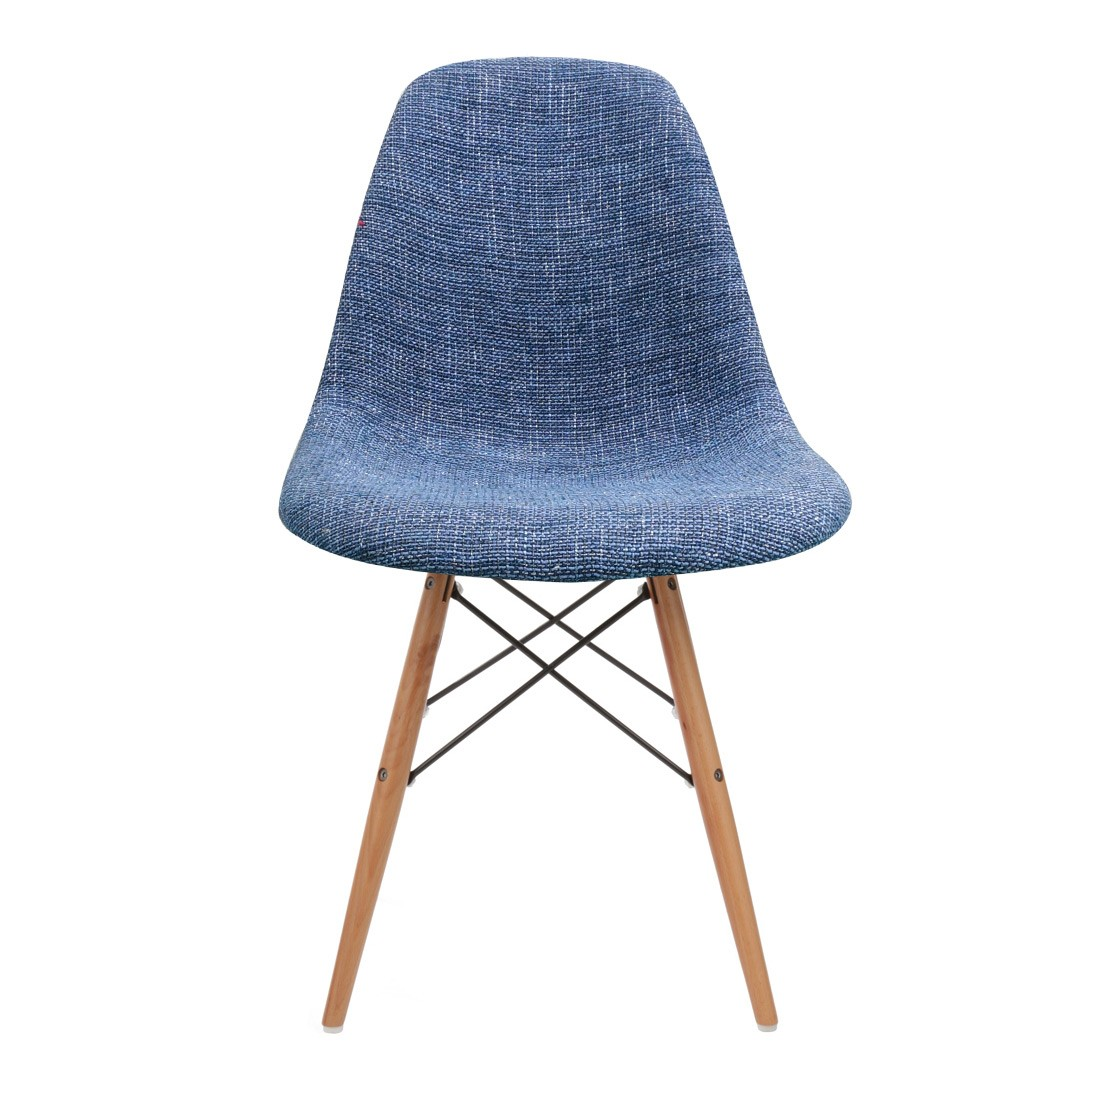 eiffel chair wood legs cheap pc gaming chairs blue fabric upholstered eames style dsw shell with